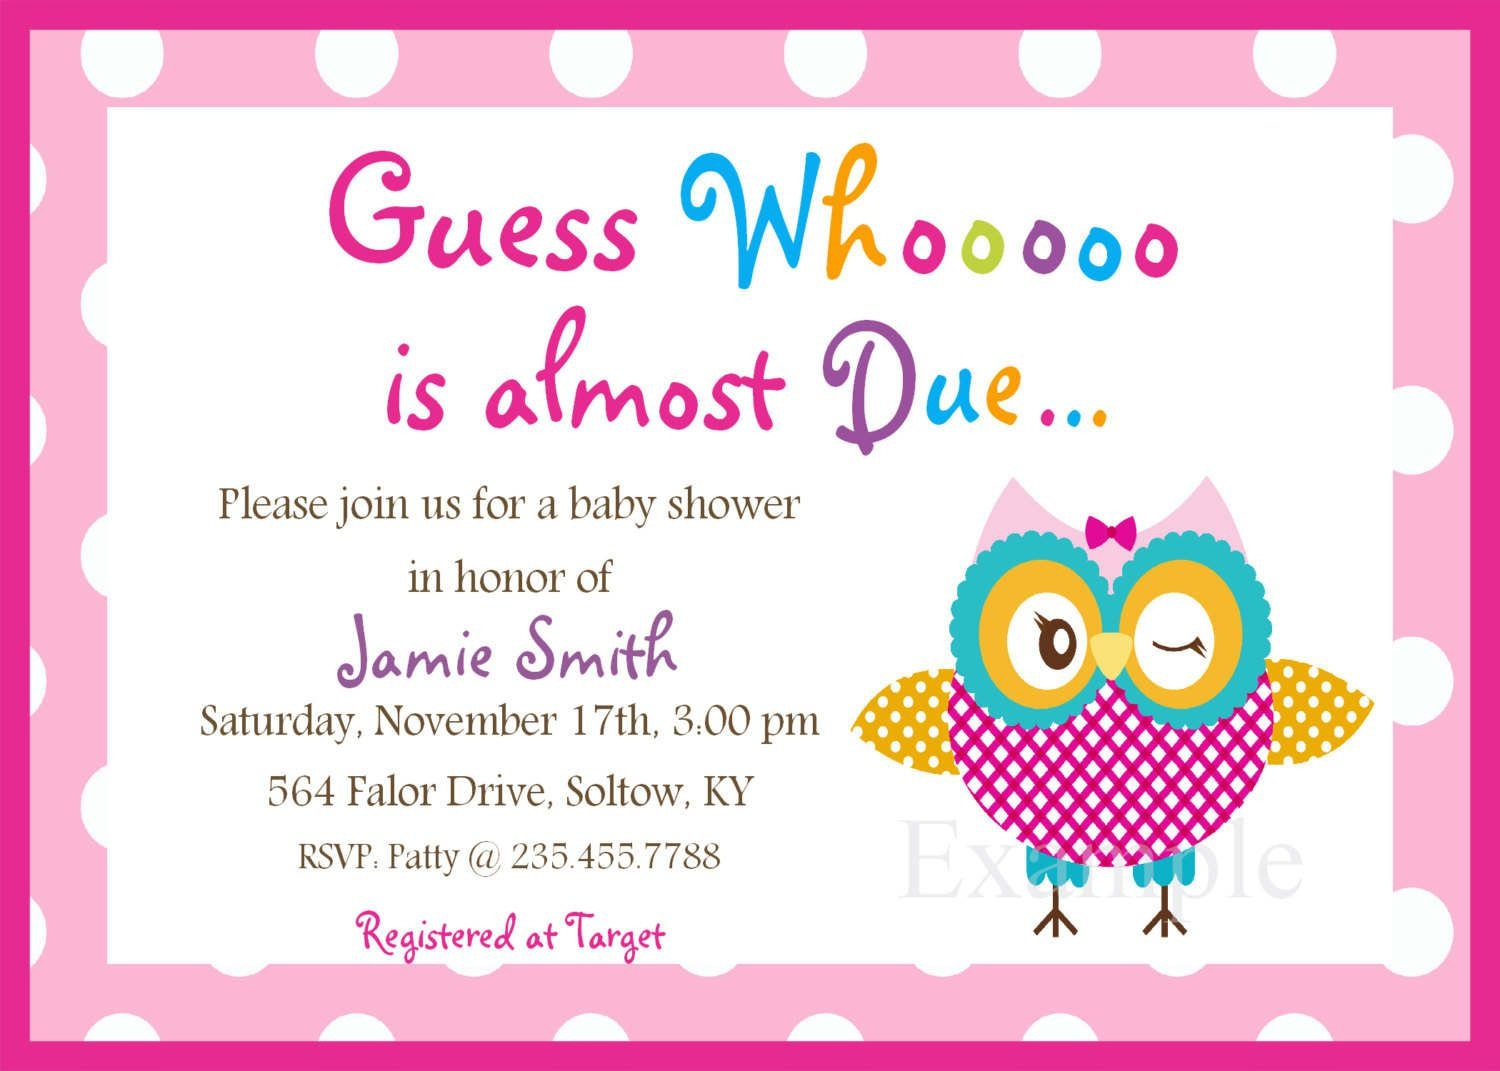 Free Download Baby Shower Invitations Templates - Layoffsn - Free Printable Baby Shower Invitations For Girls